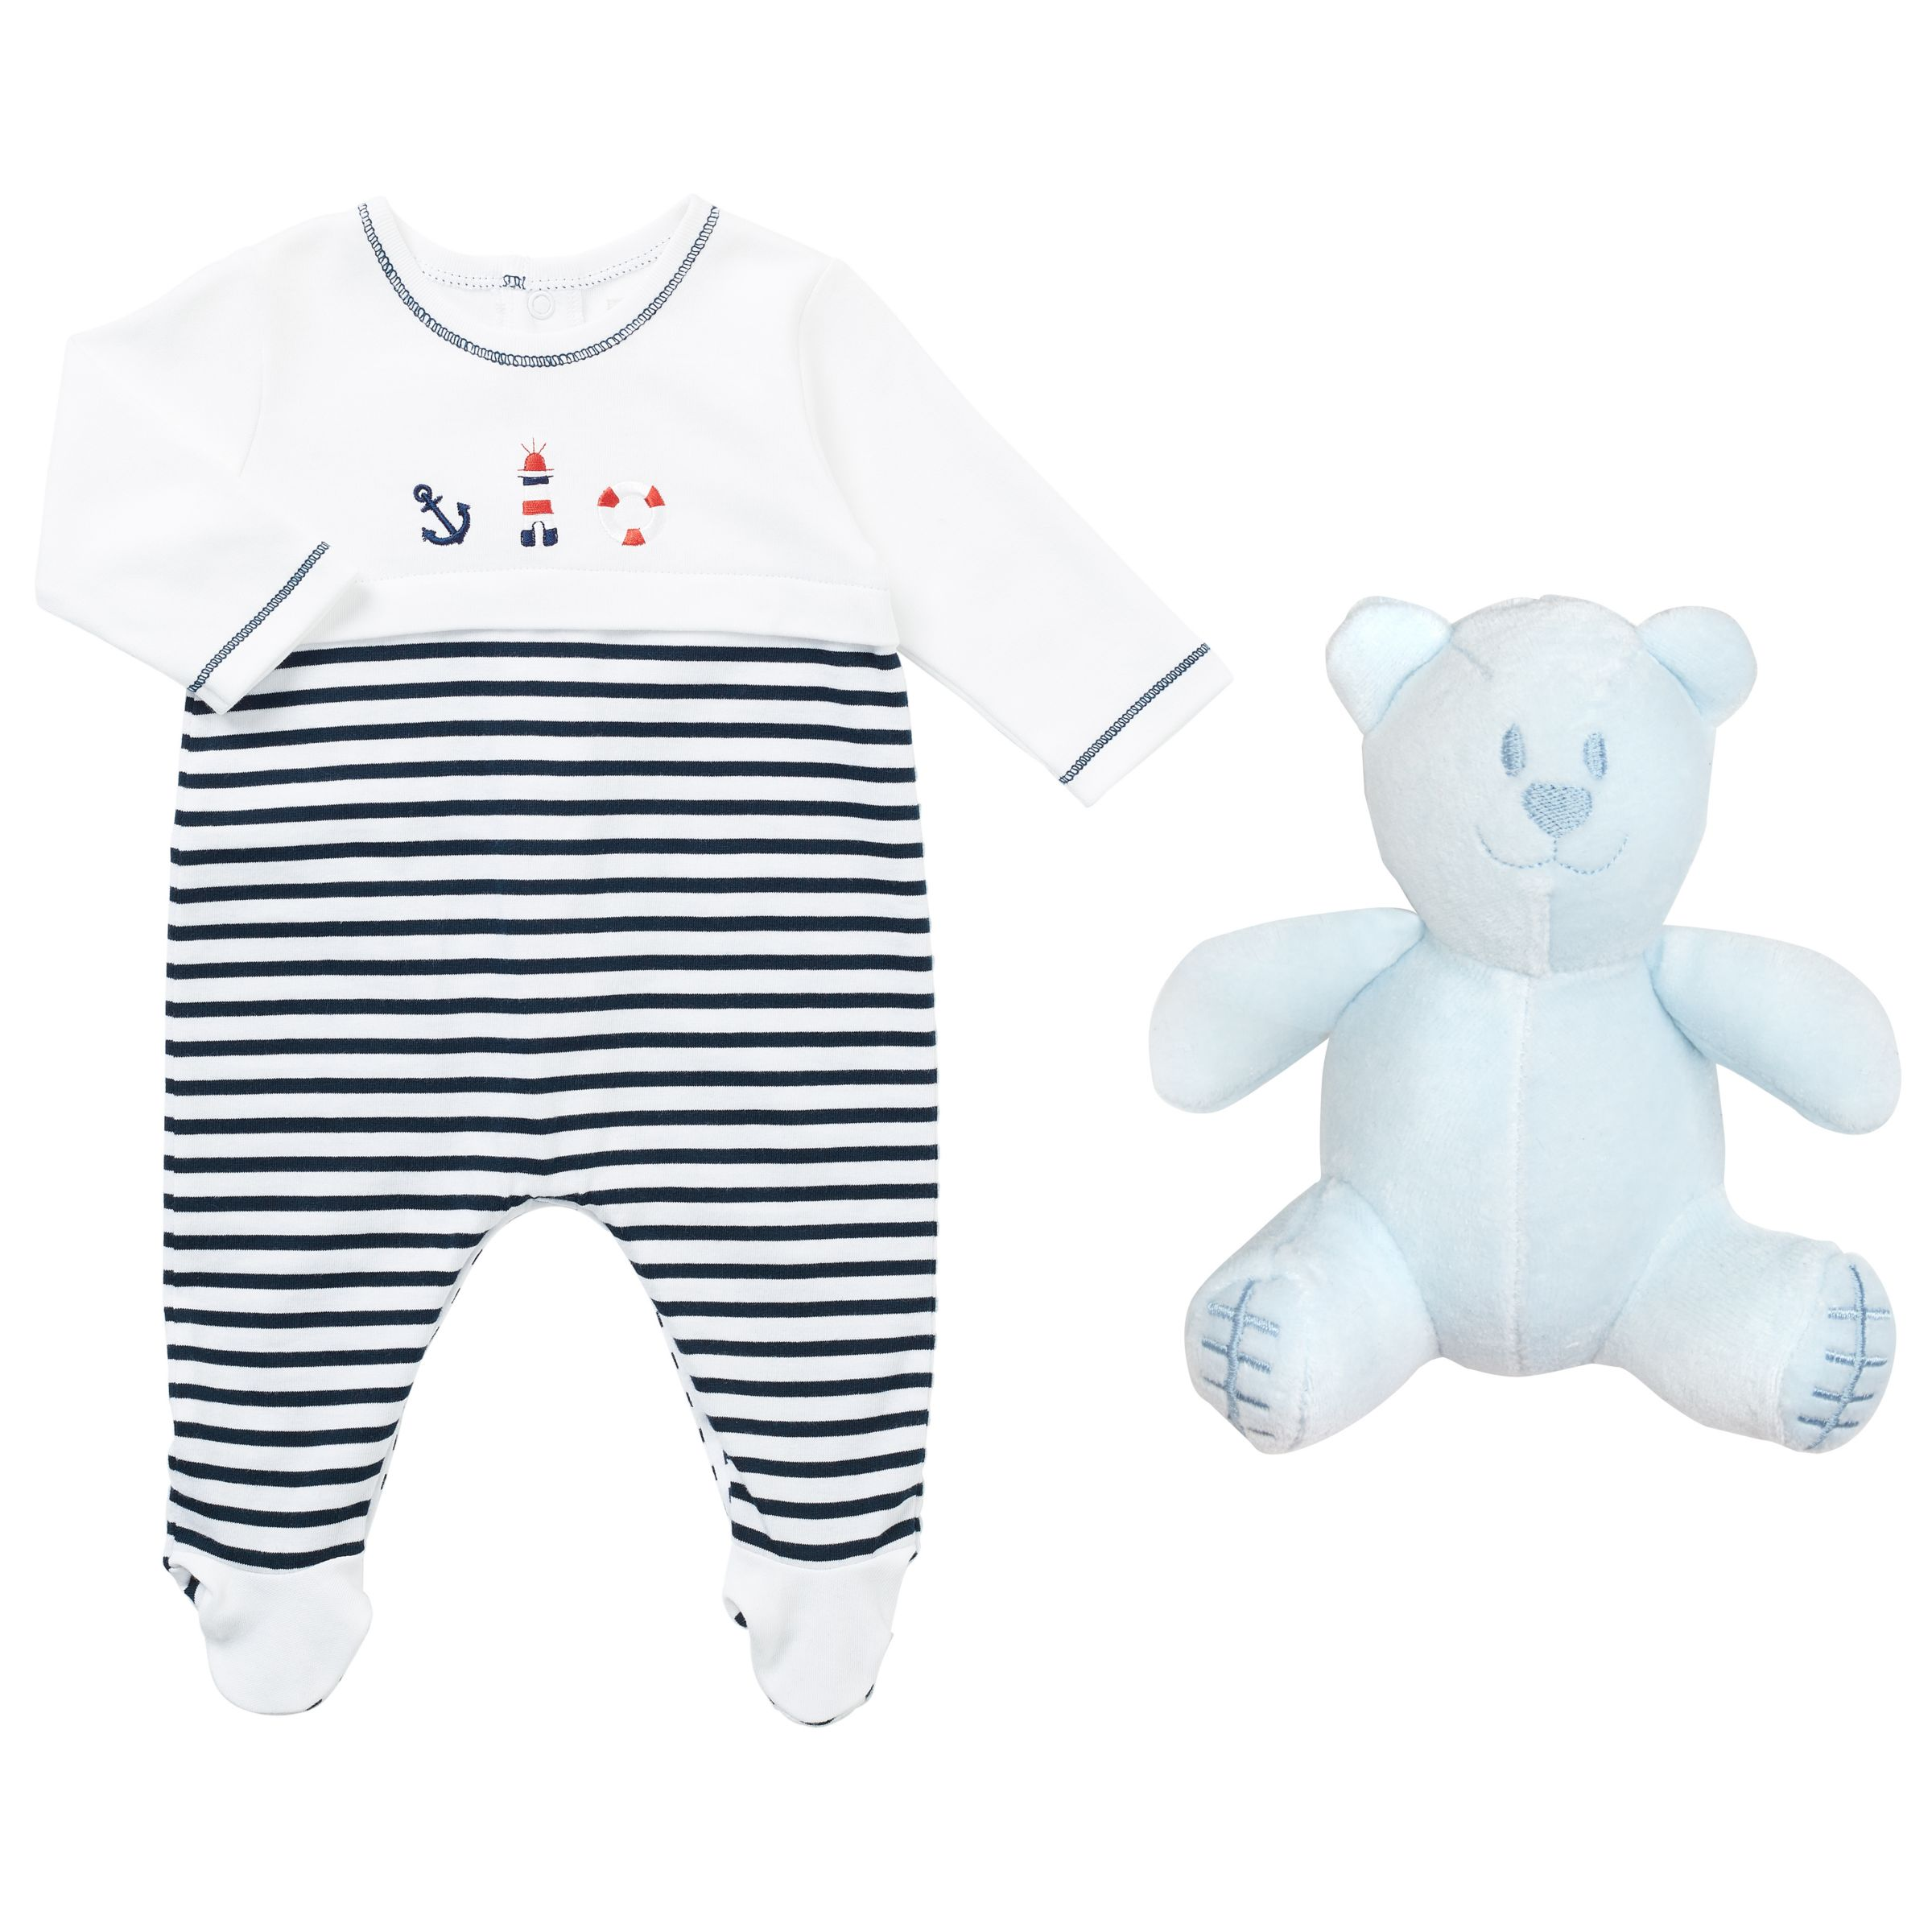 Emile et Rose Emile et Rose Baby Kenzie Nautical Romper, Navy/White